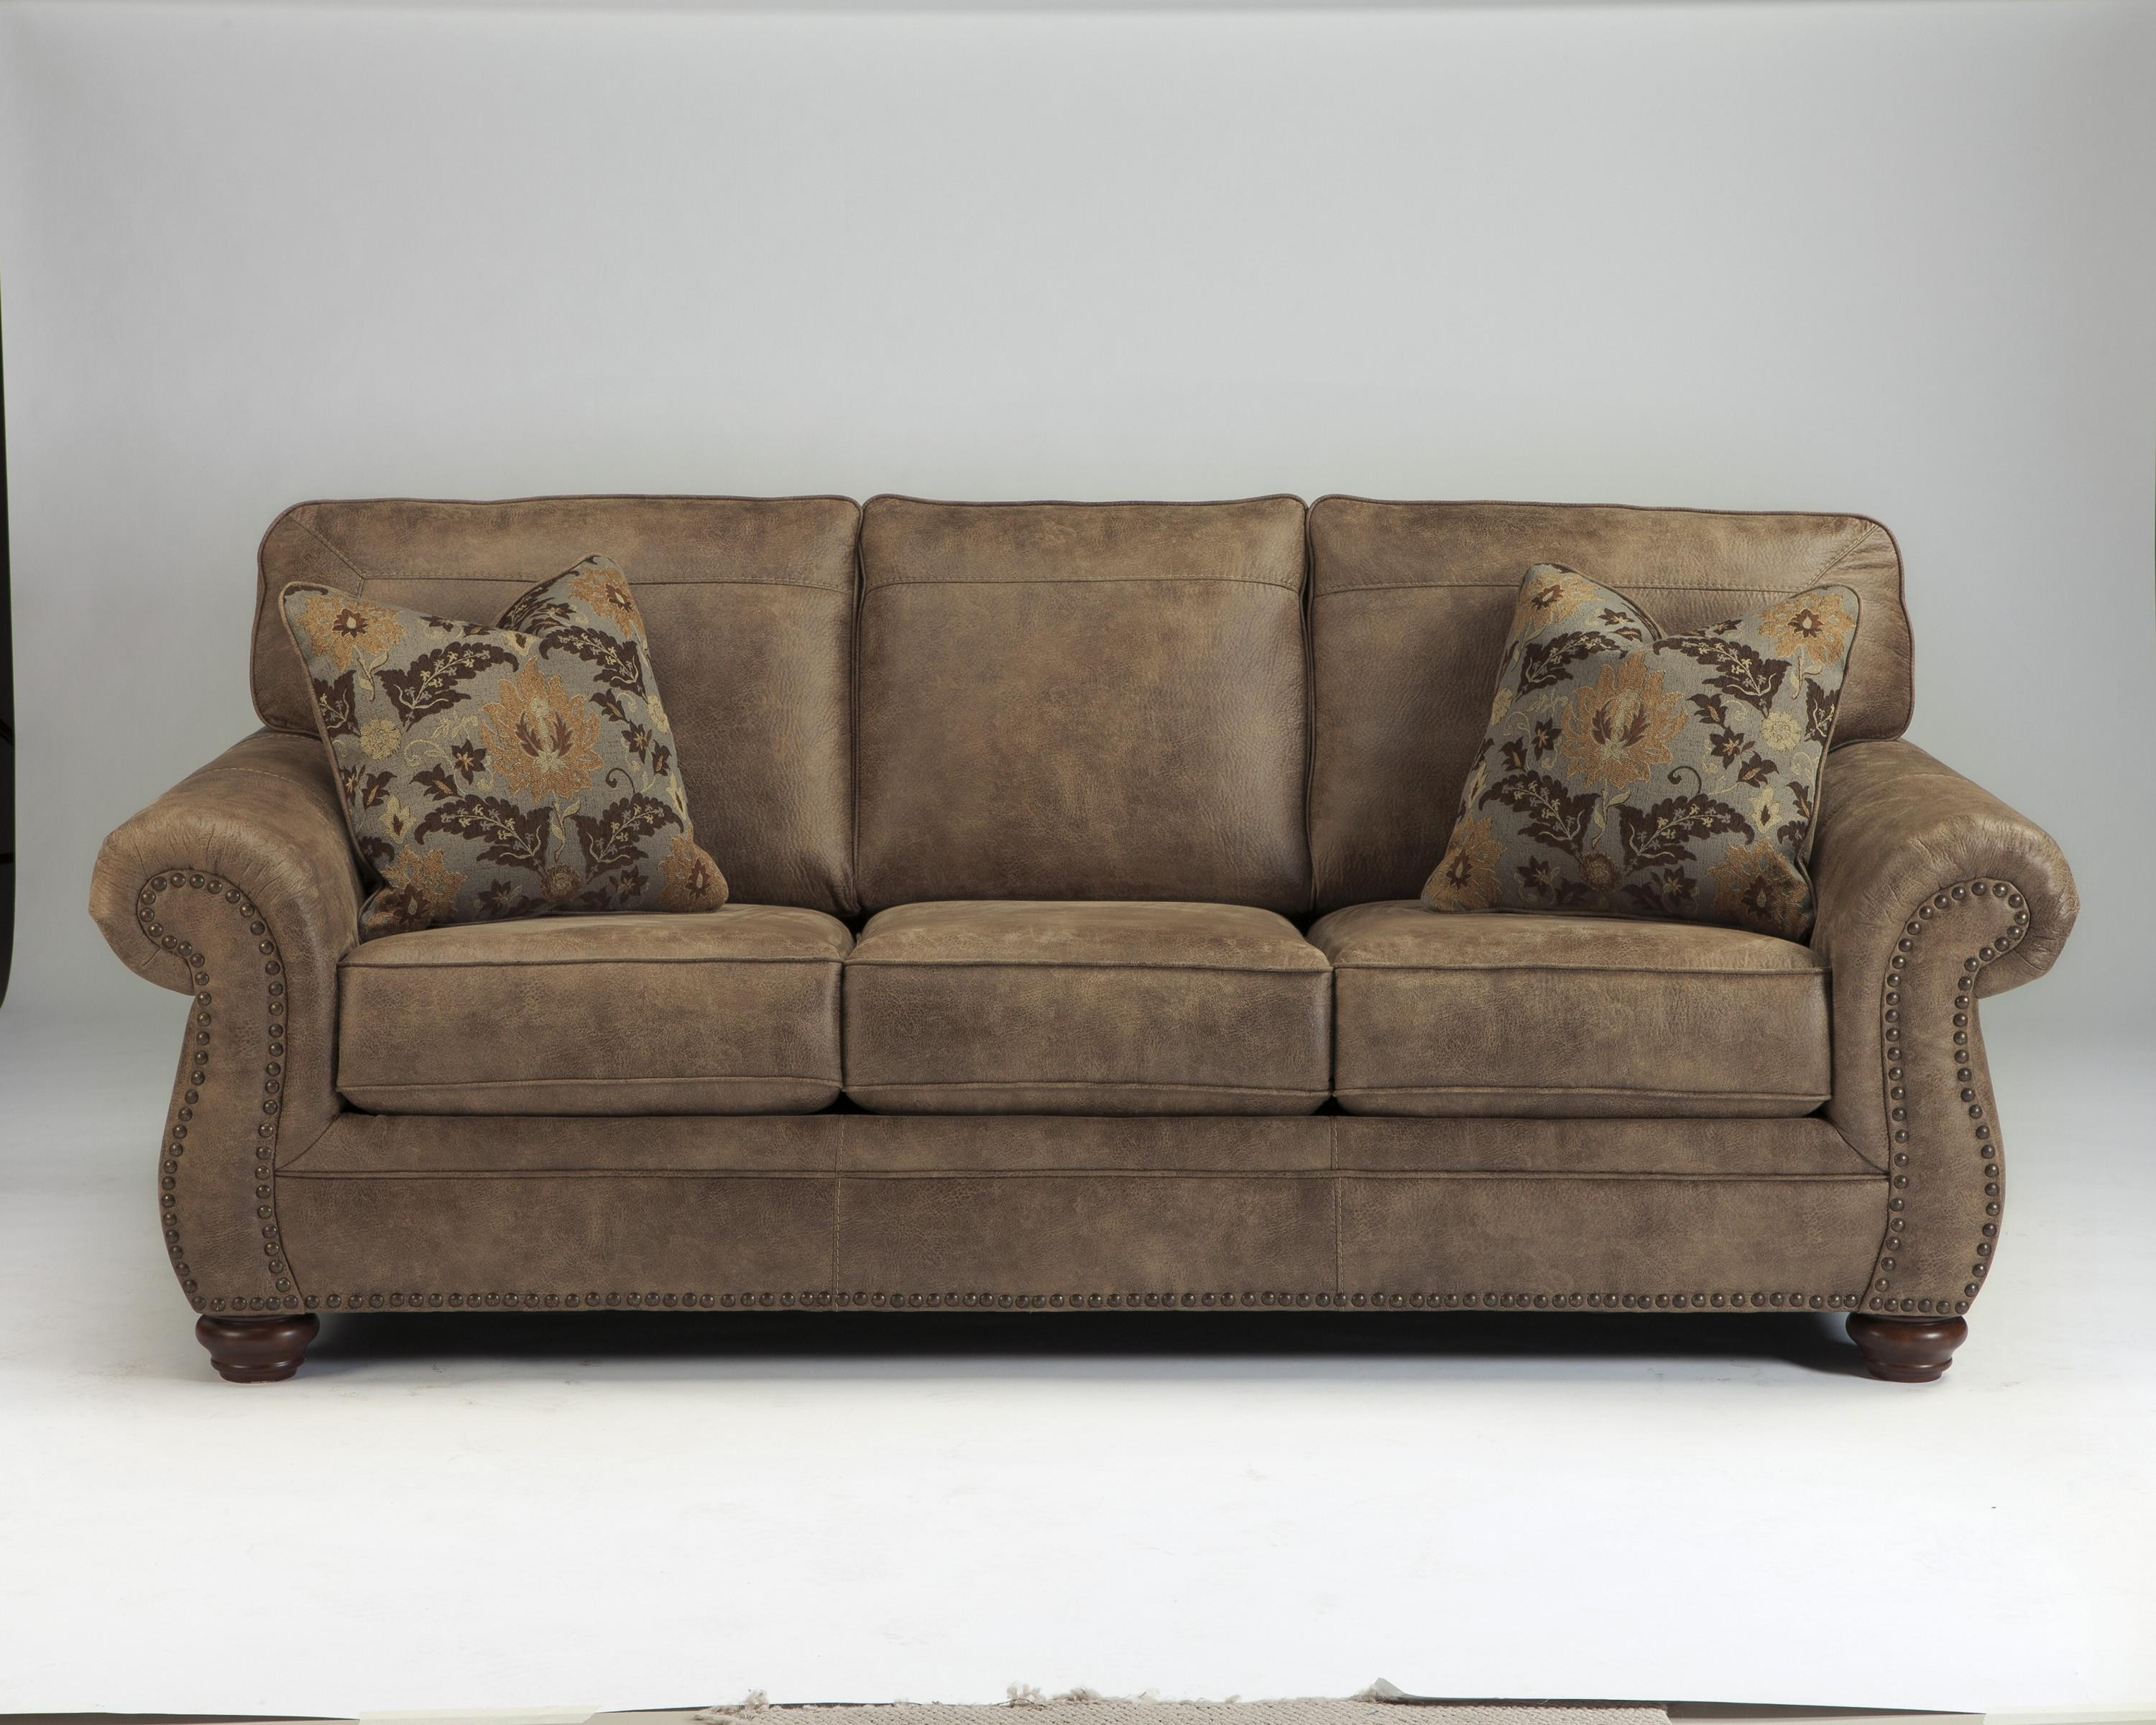 Fabric Sofas For Sale | Tehranmix Decoration Pertaining To Fabric Sofas (View 14 of 20)